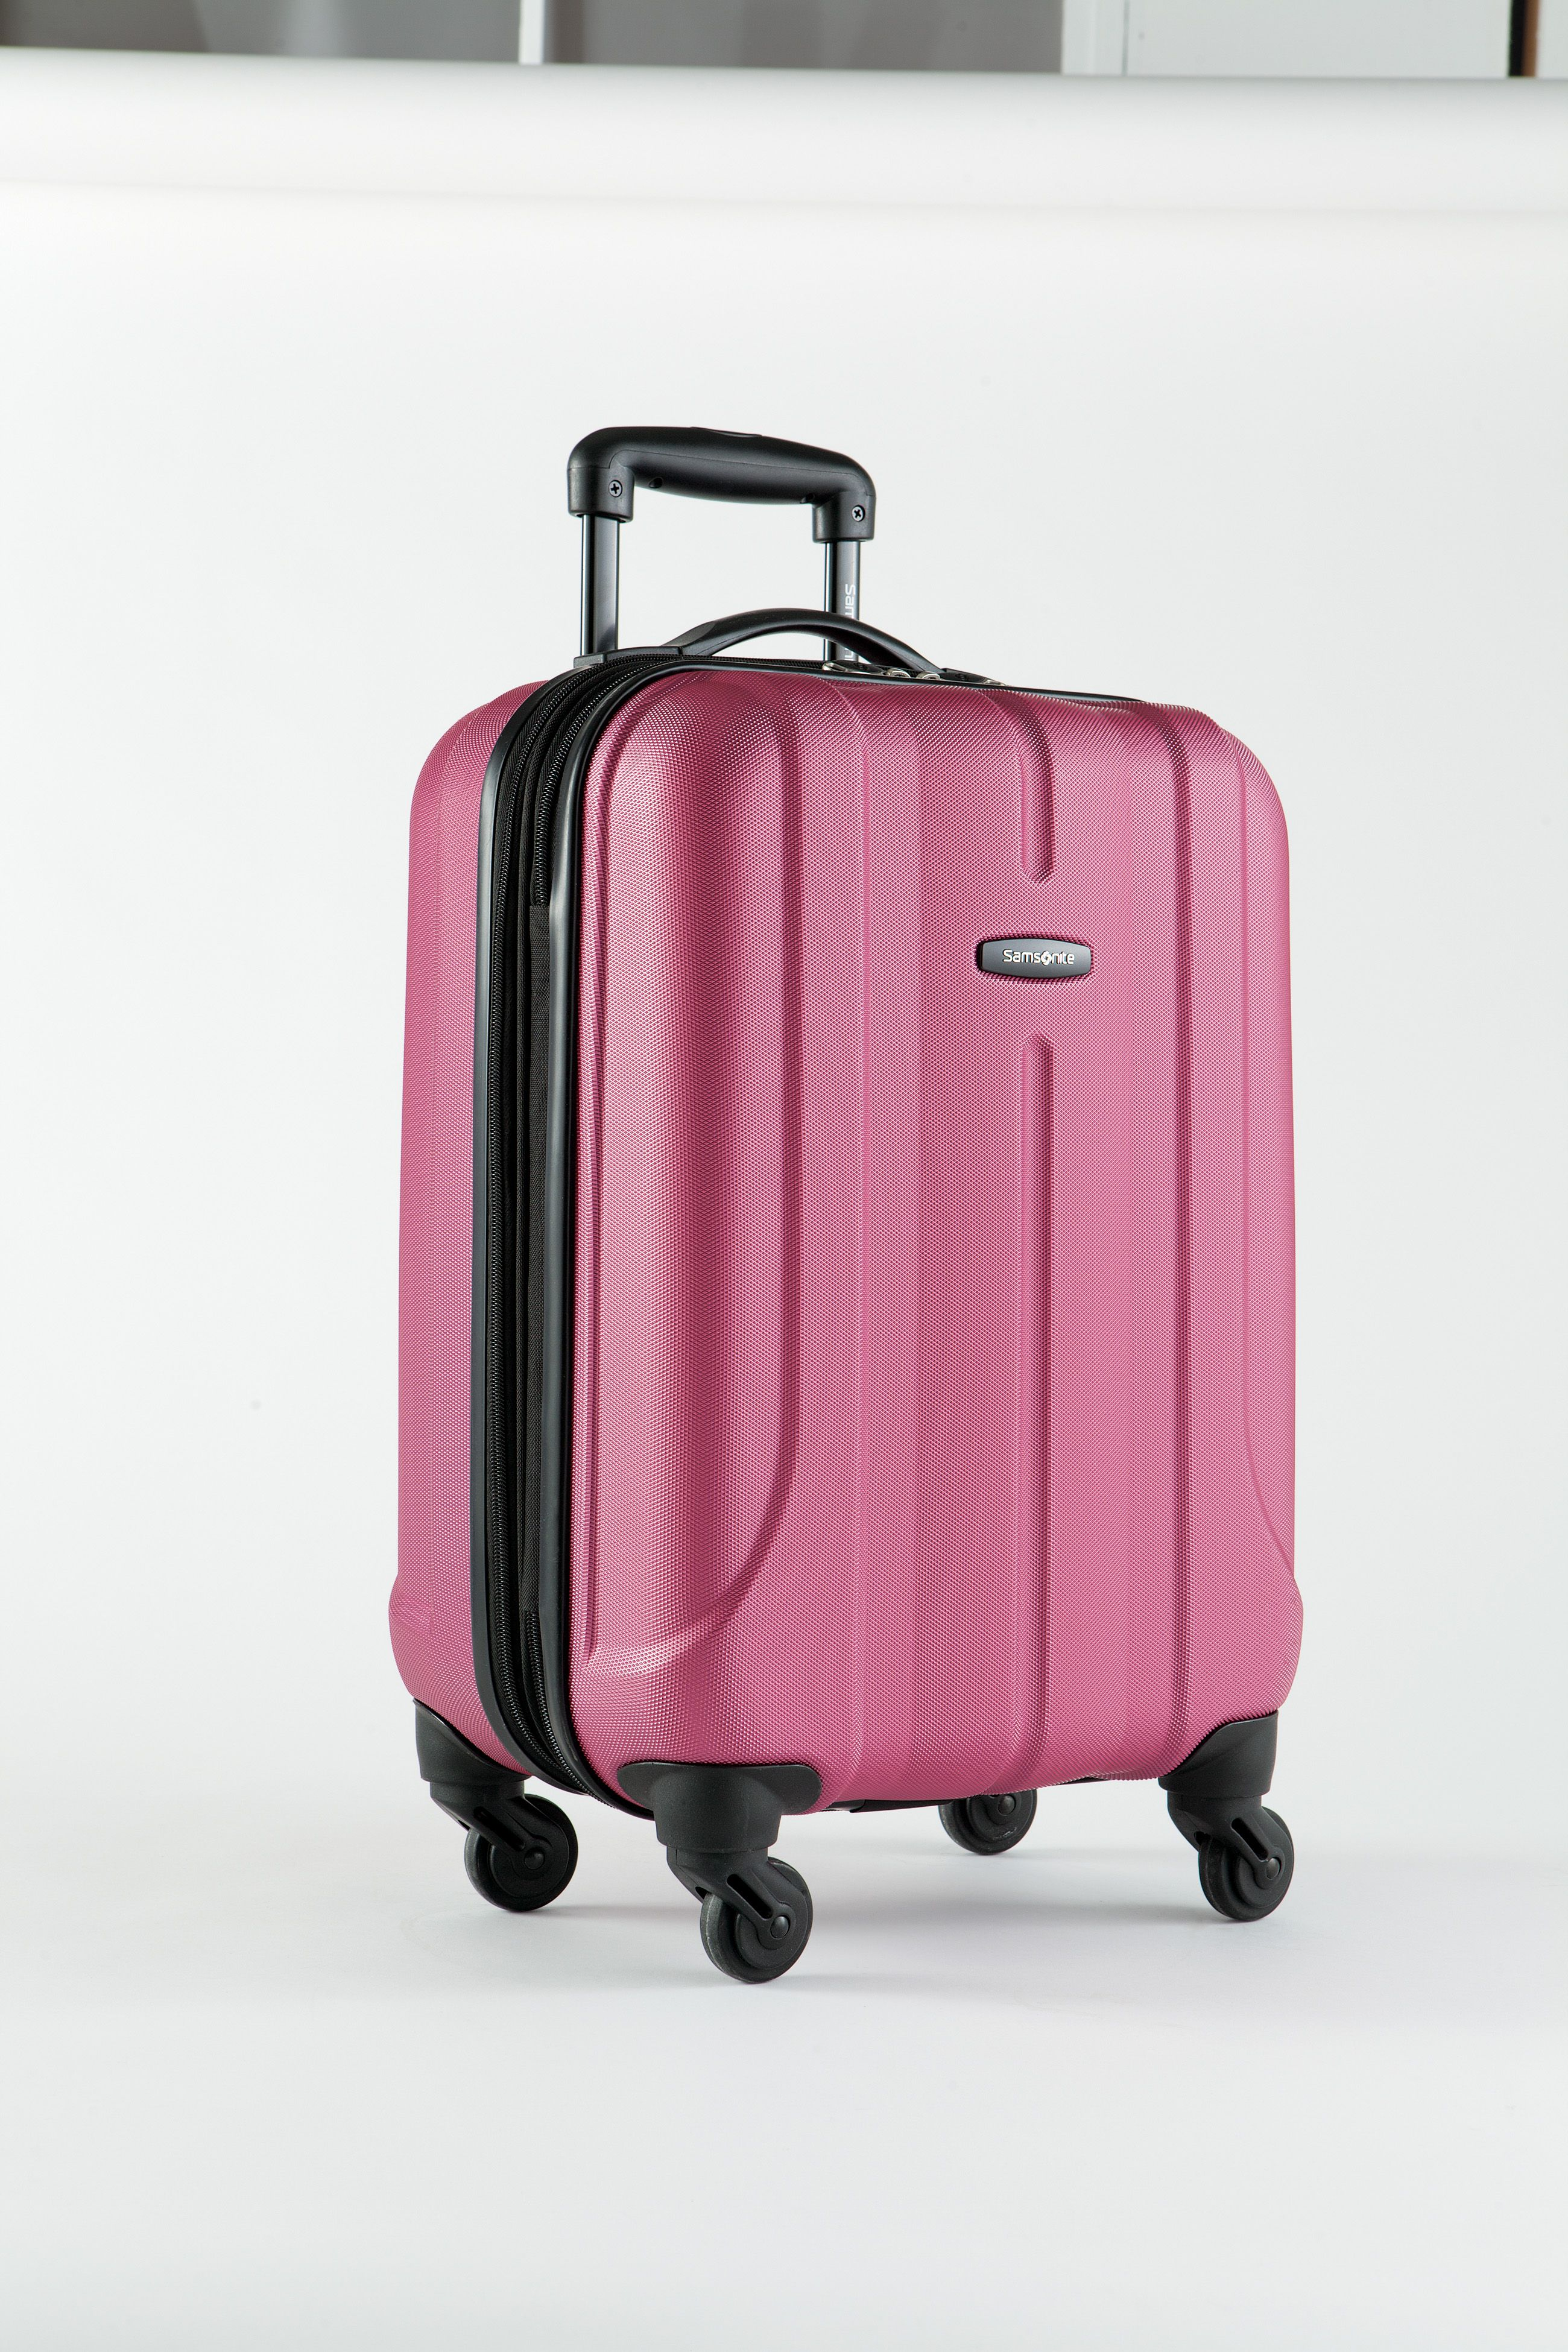 Samsonite® Fiero Hard Side Luggage Collection Purple is